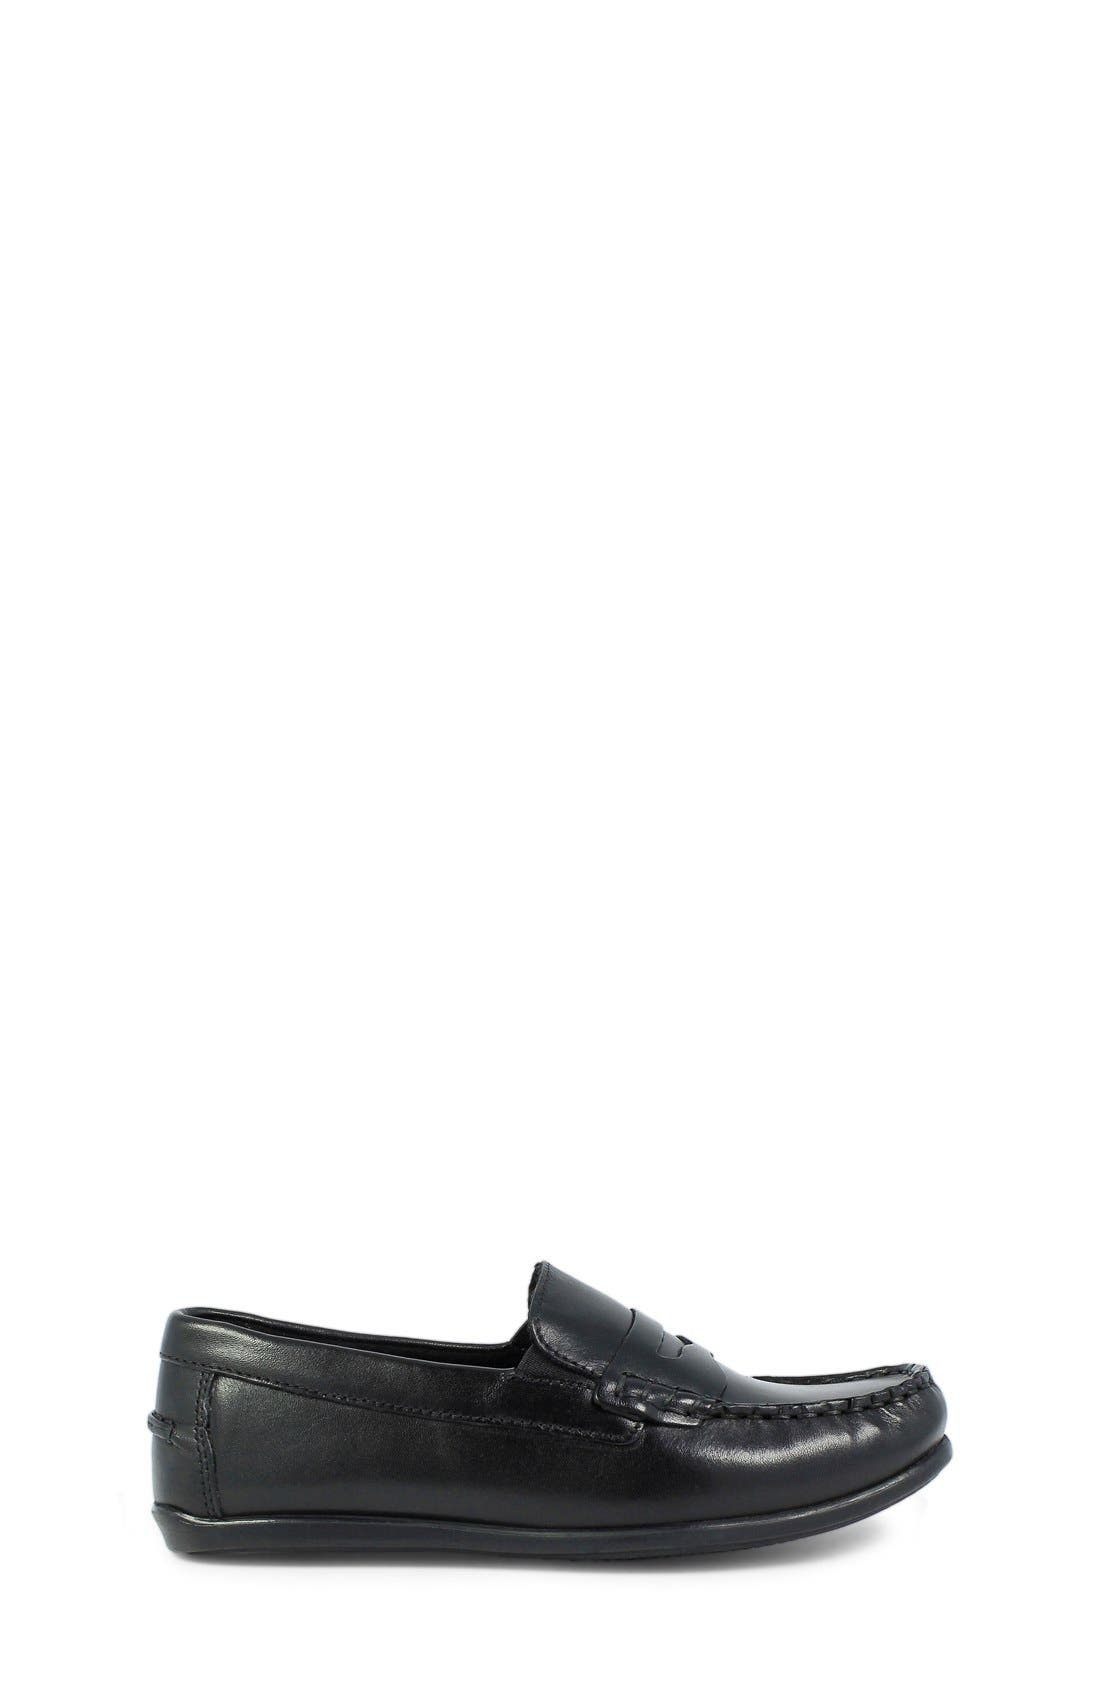 'Jasper - Driver Jr.' Loafer,                             Alternate thumbnail 3, color,                             BLACK LEATHER